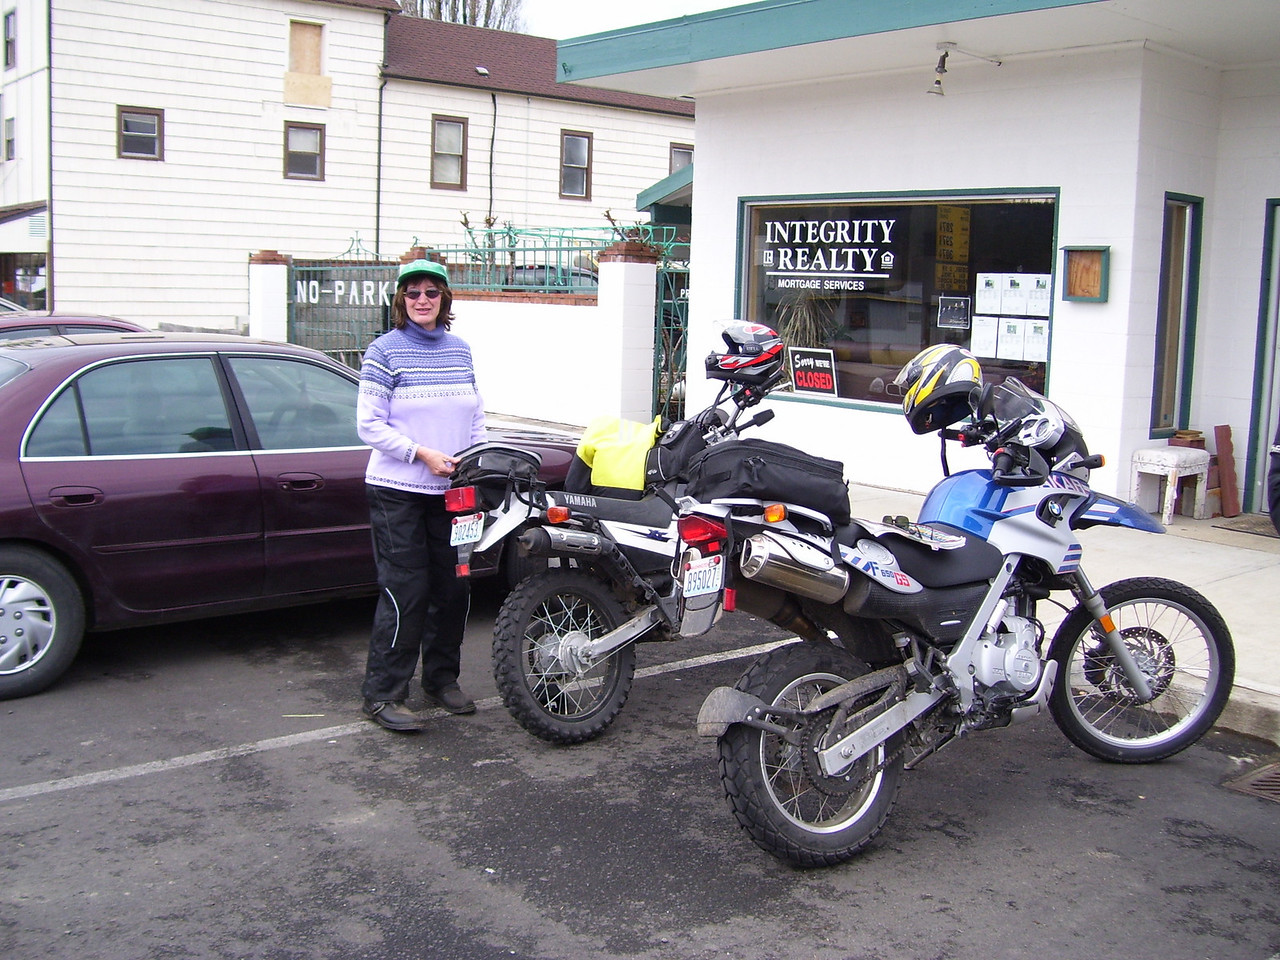 SuperSyl did a great job putting this event together. She rode her XT 225 on Sunday.